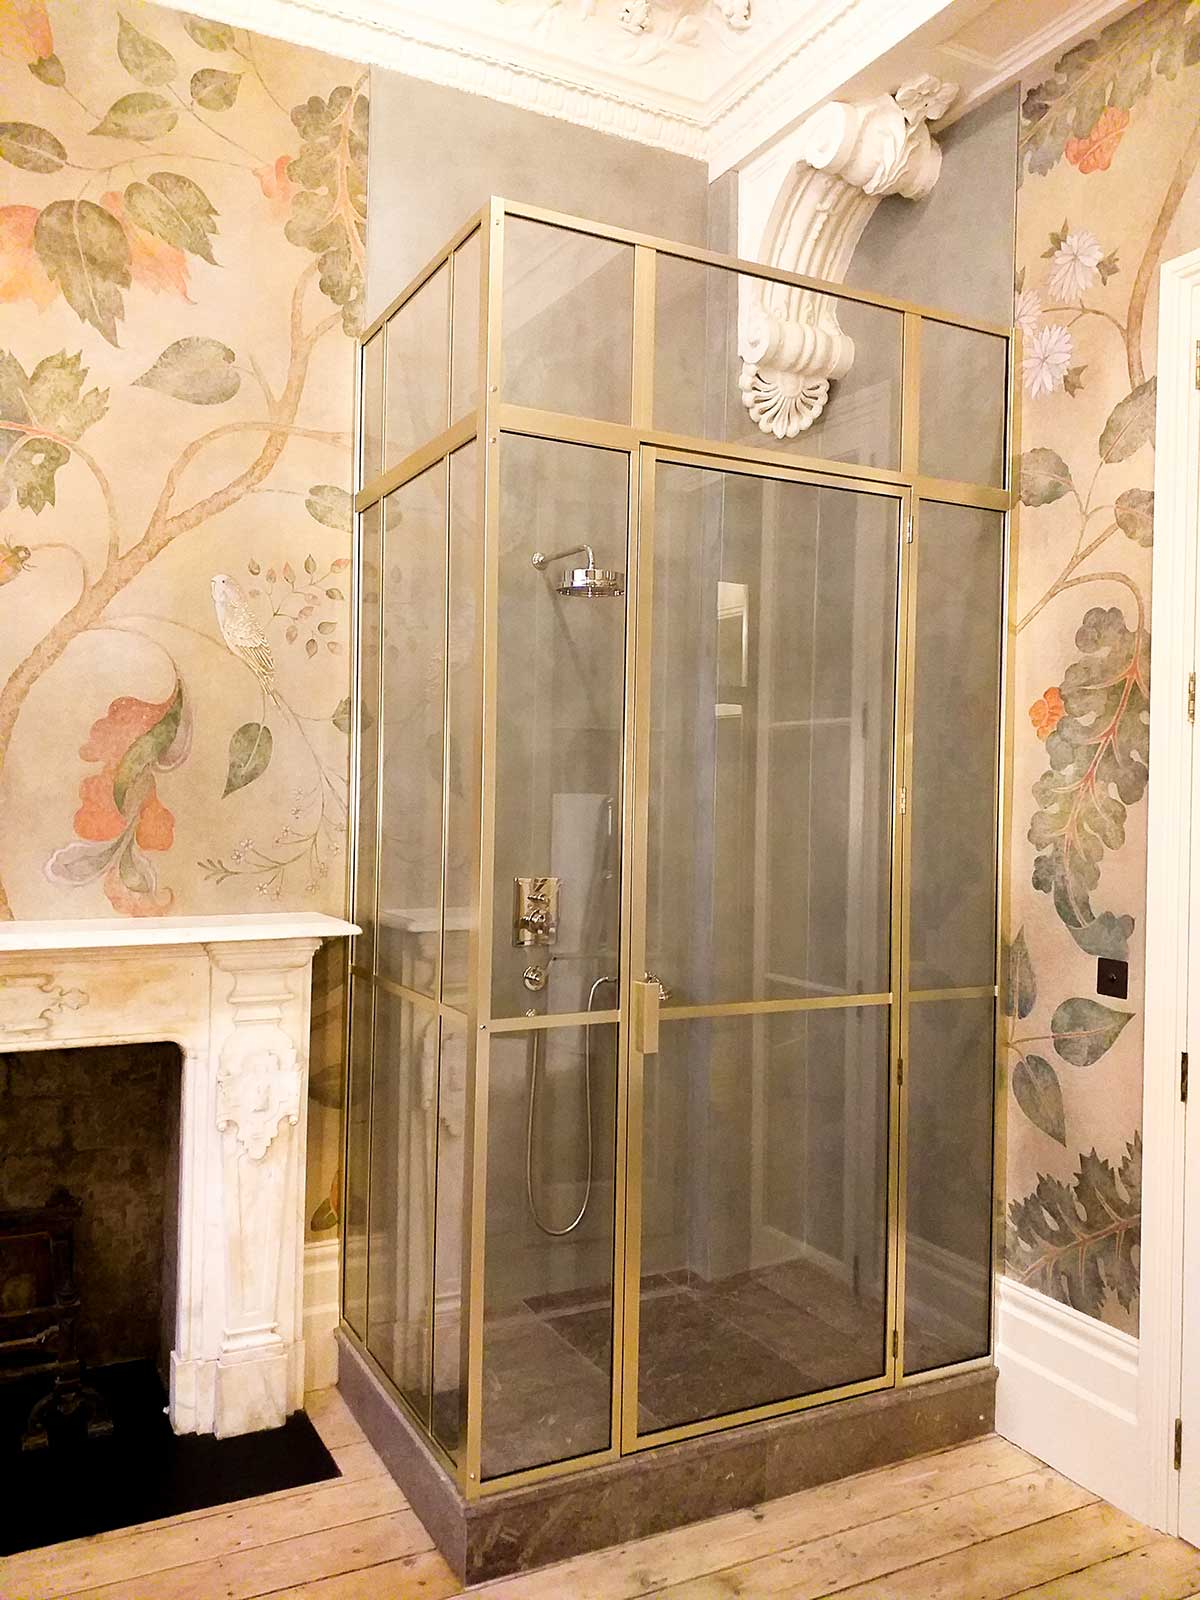 Brushed nickel shower enclosure with transom